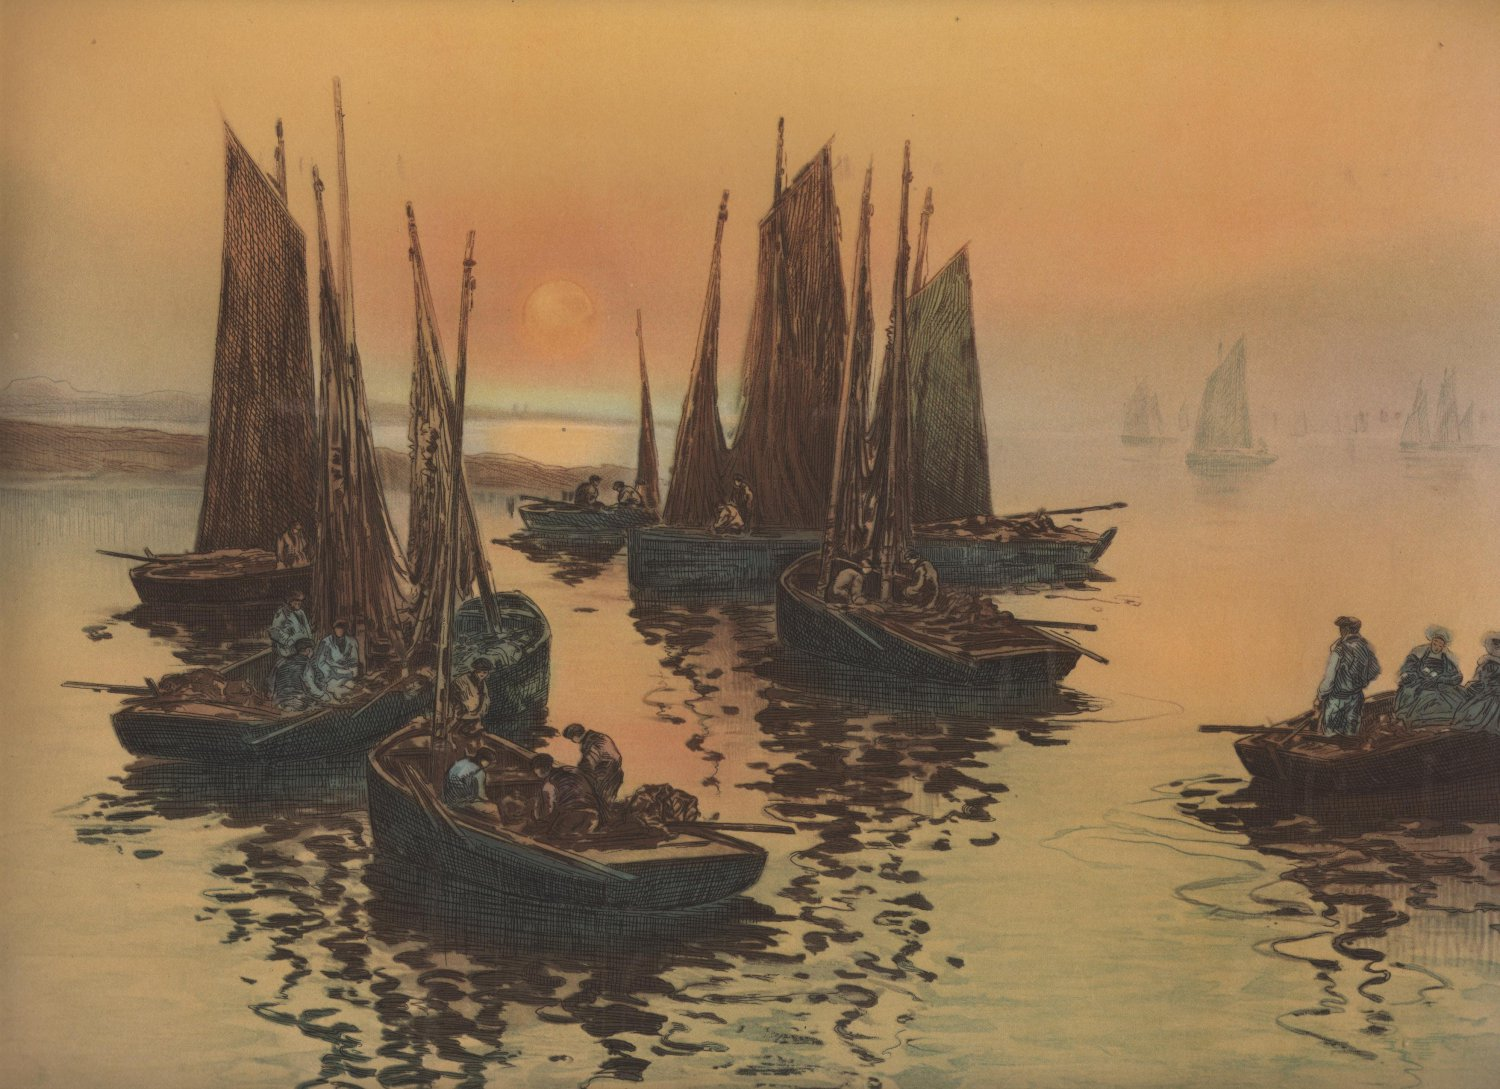 Glory of The Morning, T. Le Gout-Gerard Etching, Pictorial Review Print, Color c.1926